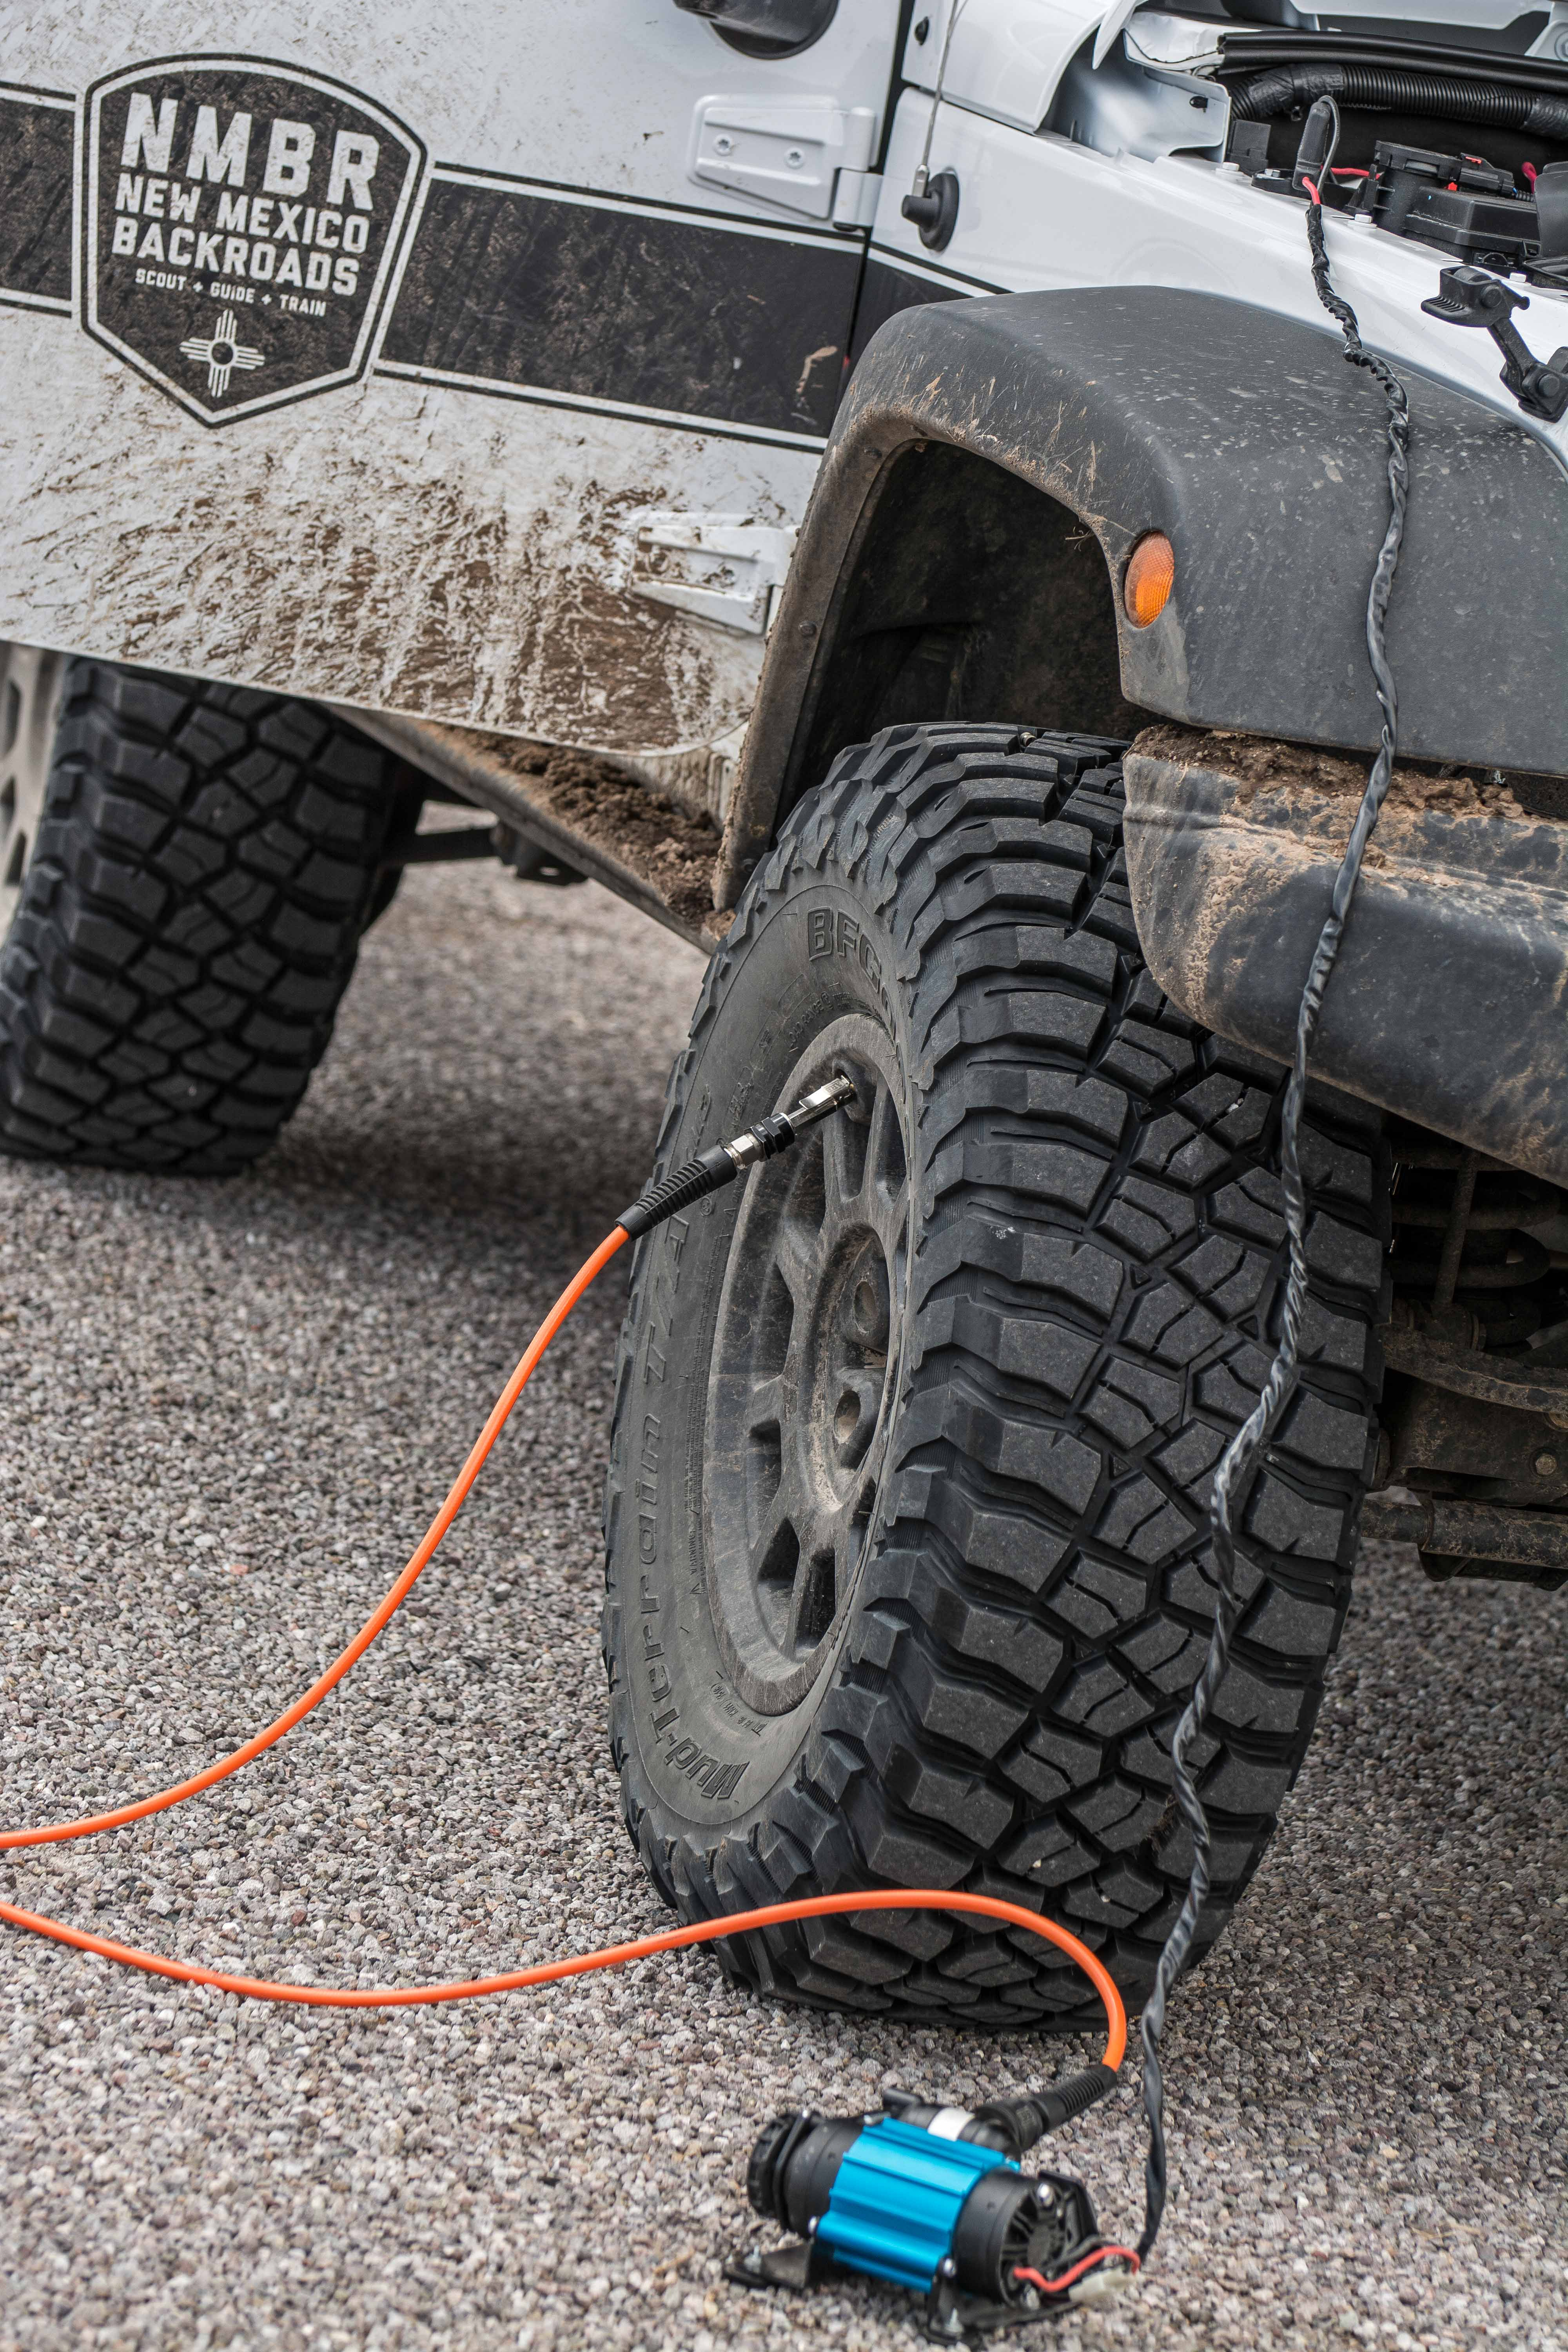 Bf Goodrich Ta Ko2 >> BFGoodrich KM3 Mud Terrain: New Mexico Backroads' 12,000-mile Review - Expedition Portal